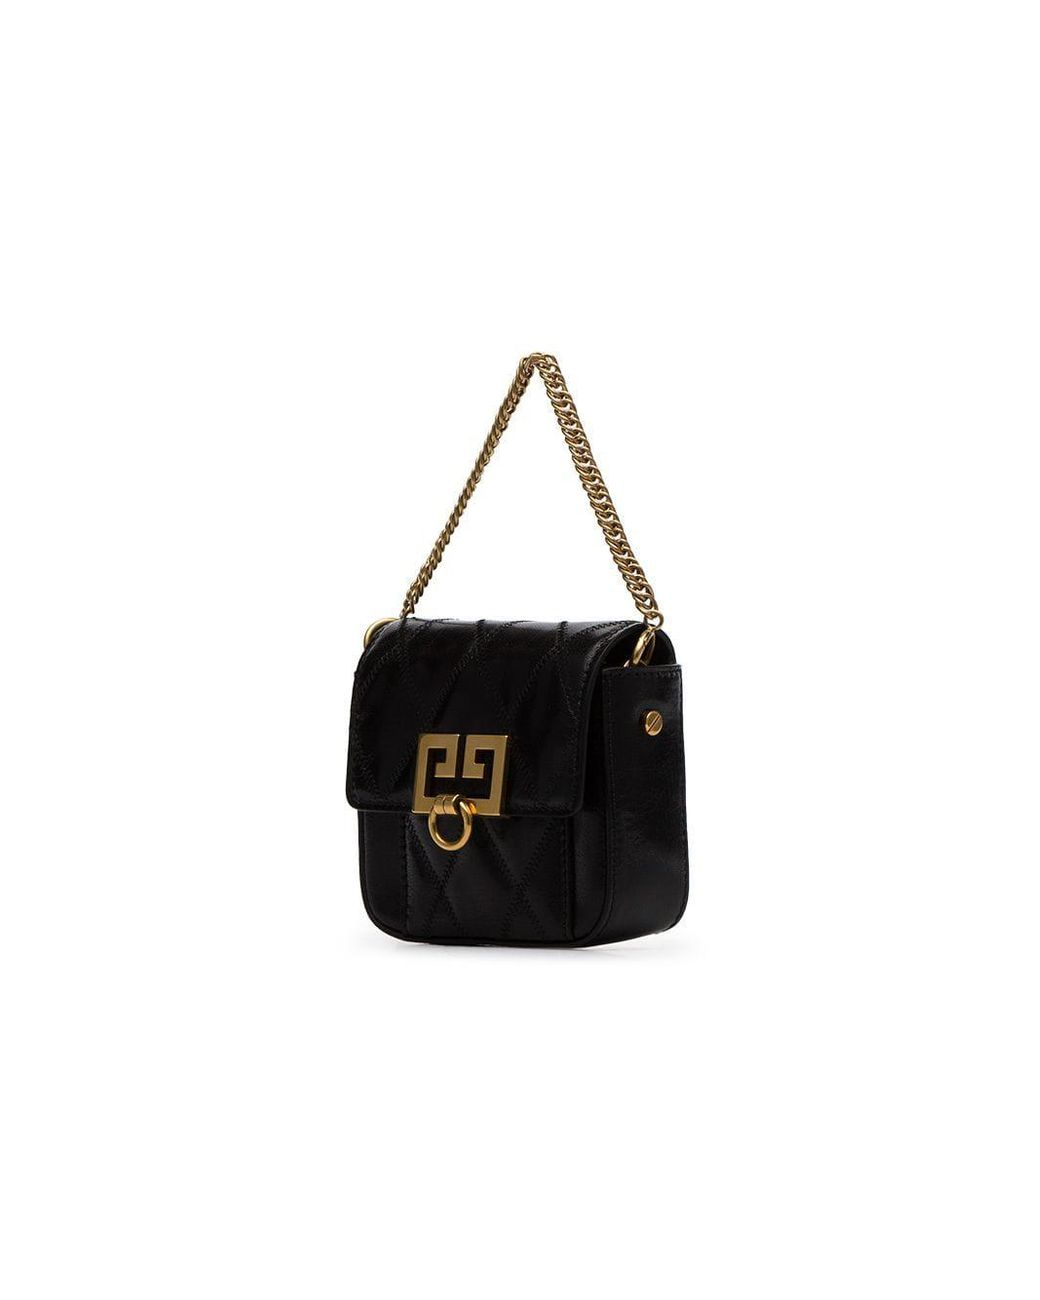 01dfea85de Givenchy Black Nano Box Quilted Leather Mini Bag in Black - Lyst